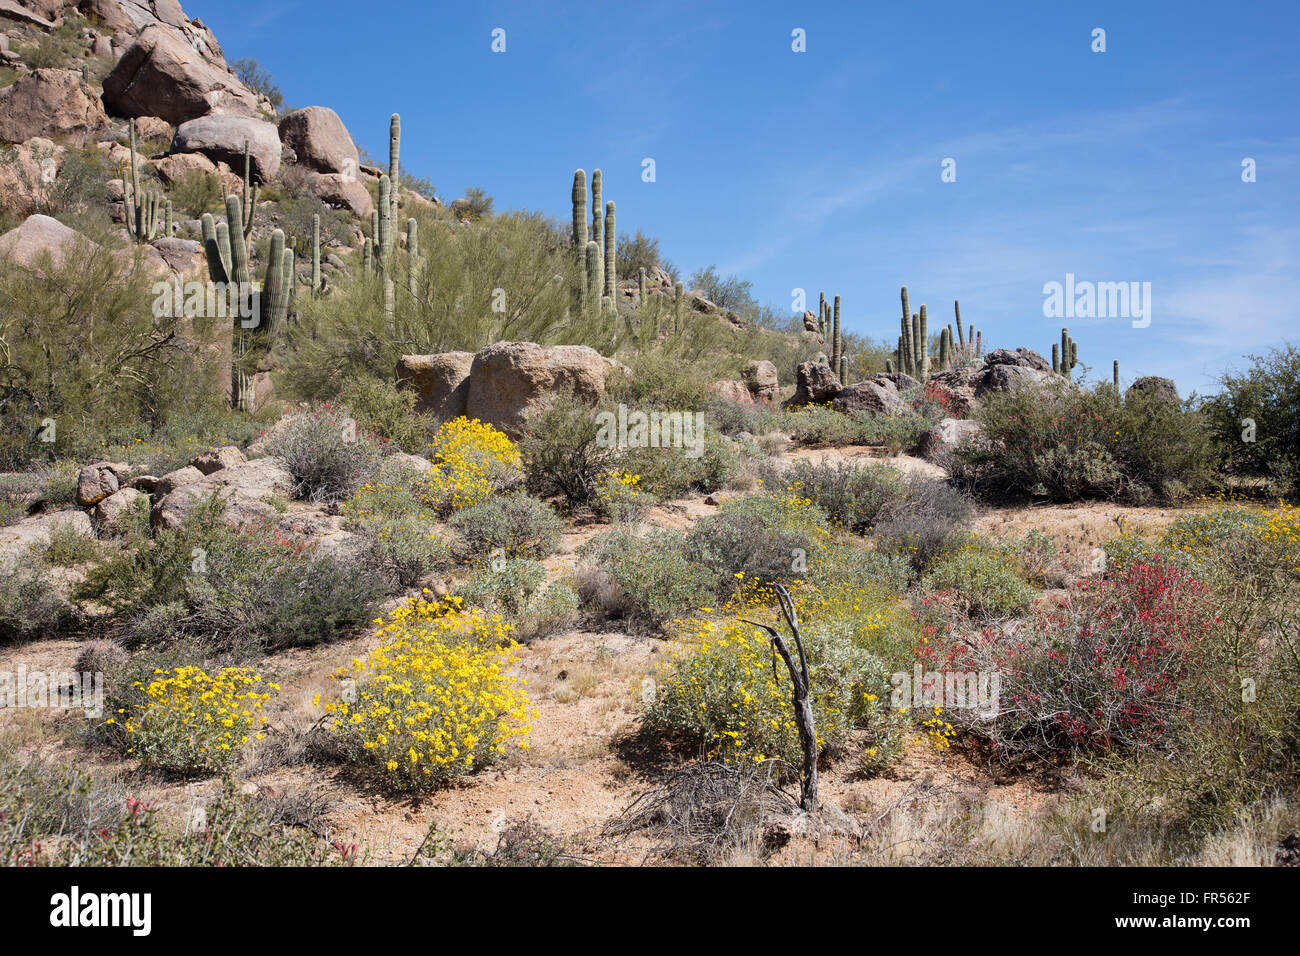 Spring wildflowers in the southwestern desert USA - Stock Image